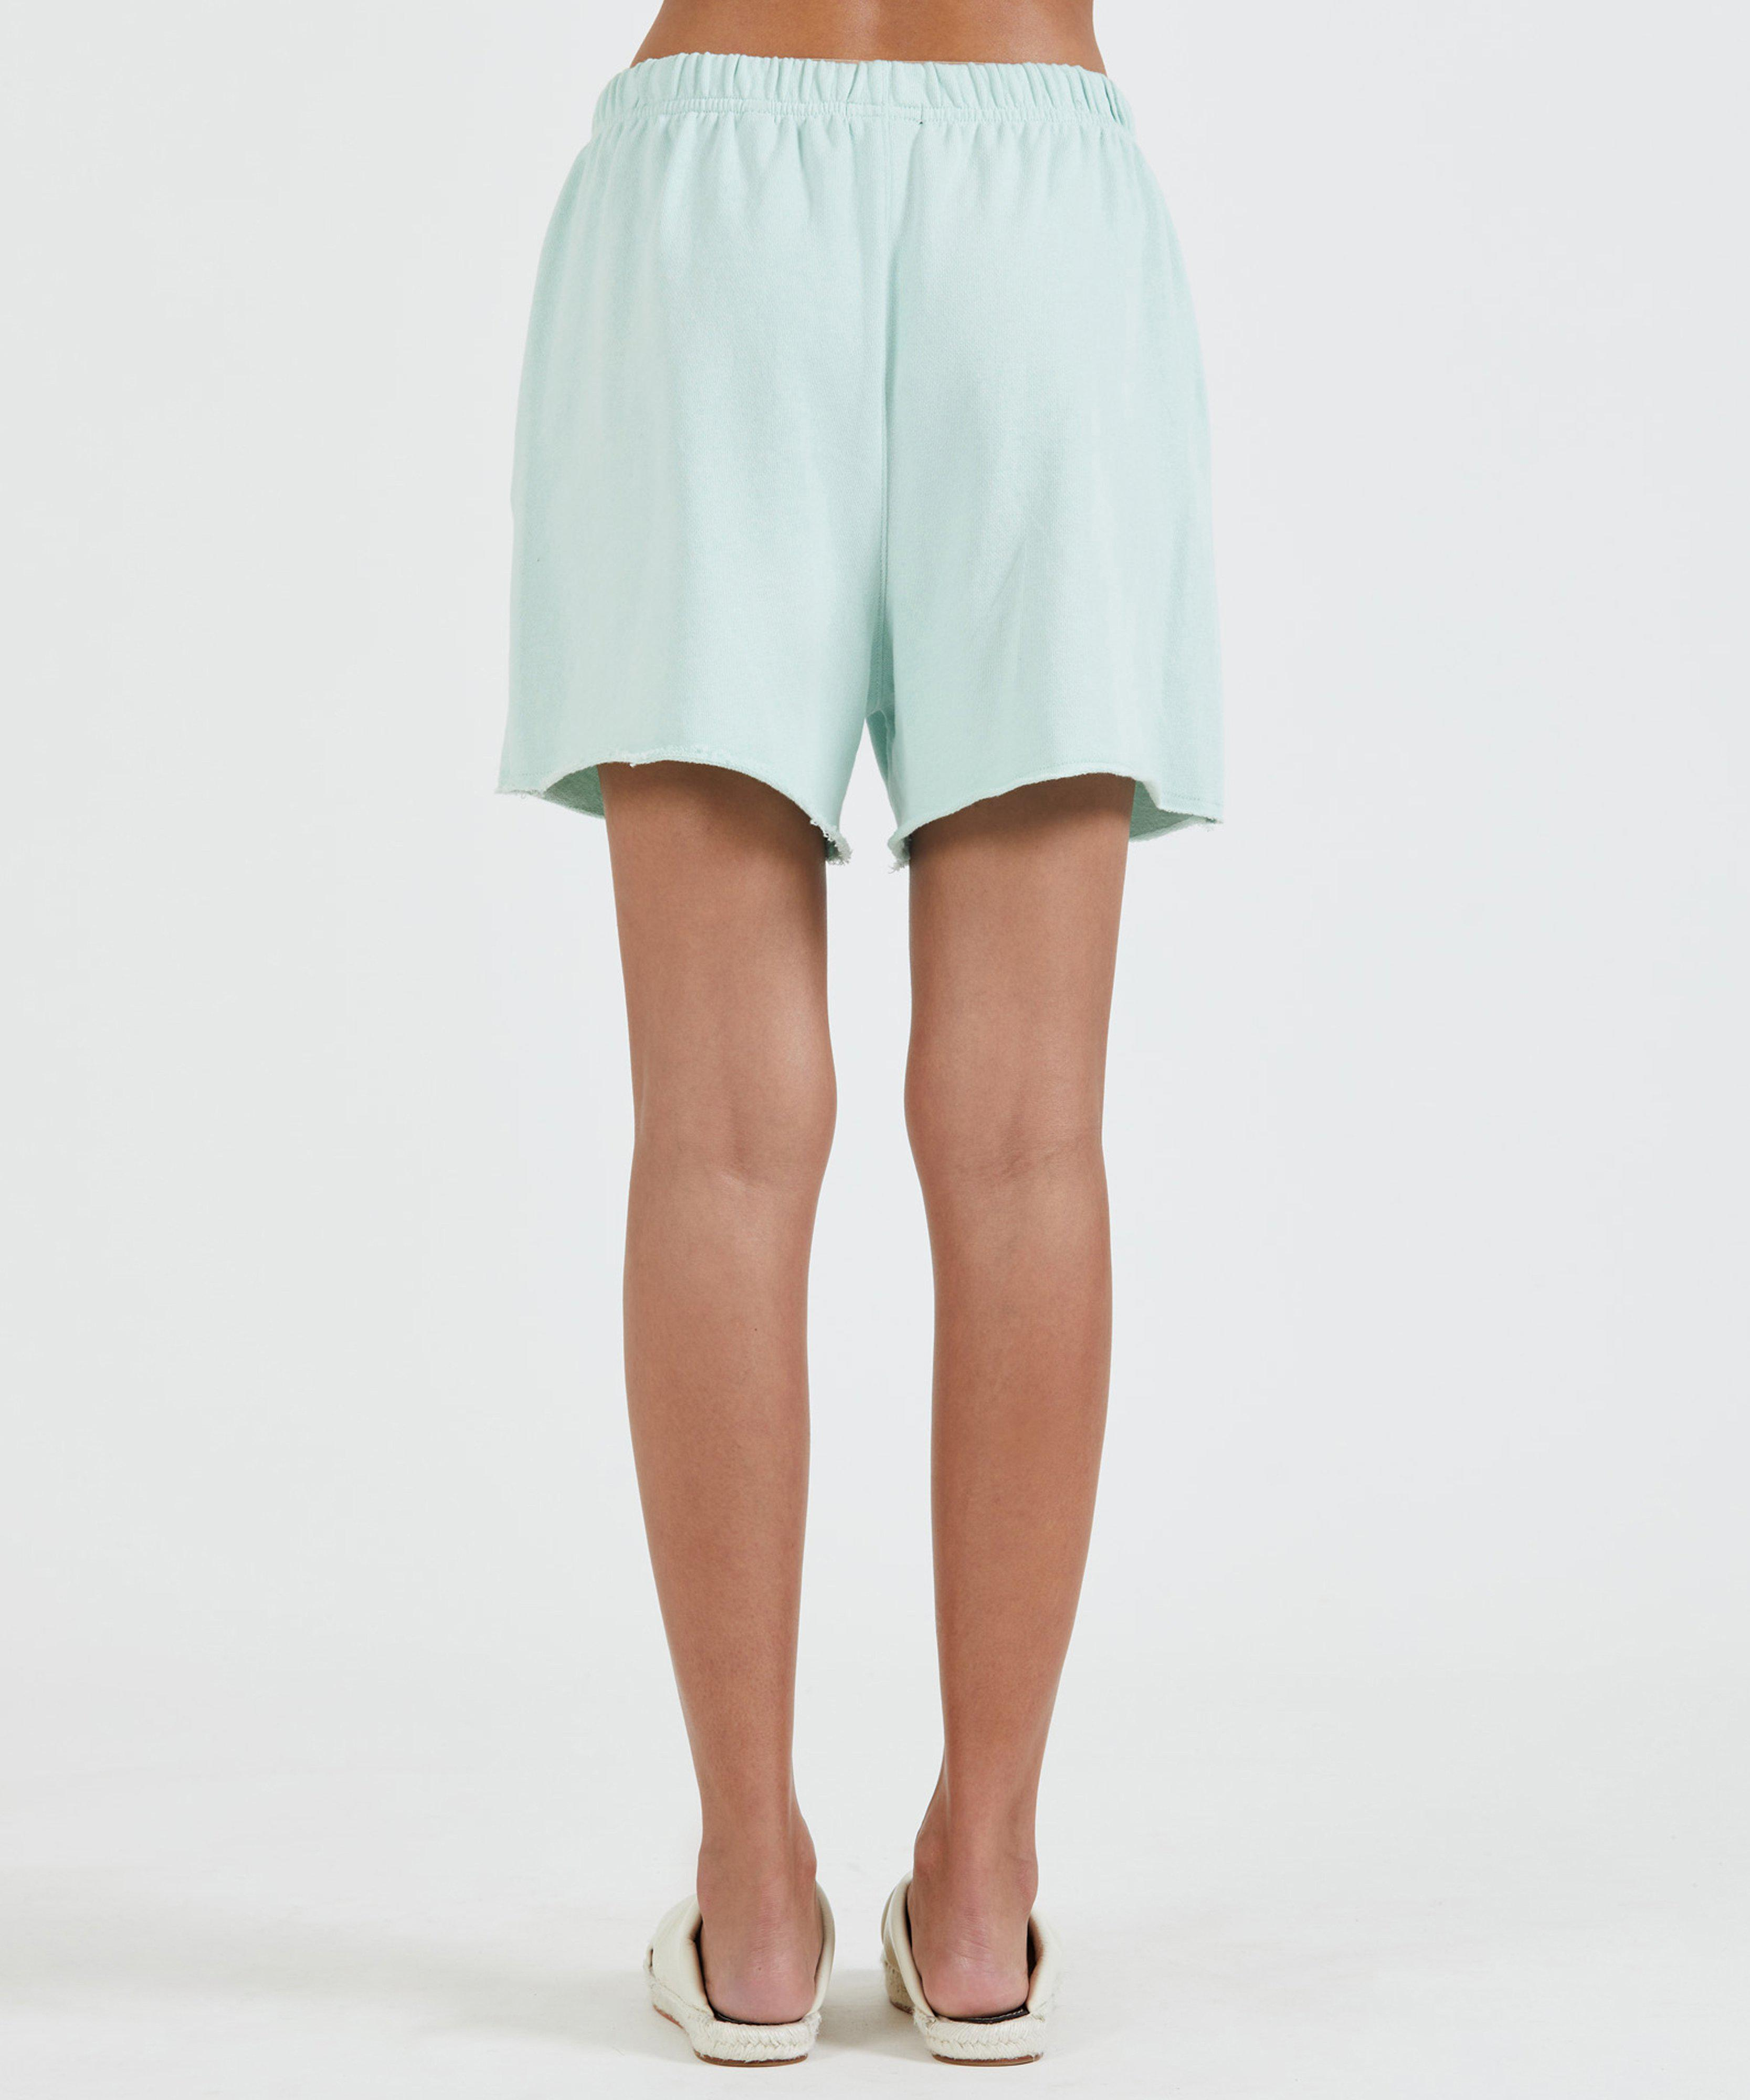 French Terry Pull-On Short - Mint 2